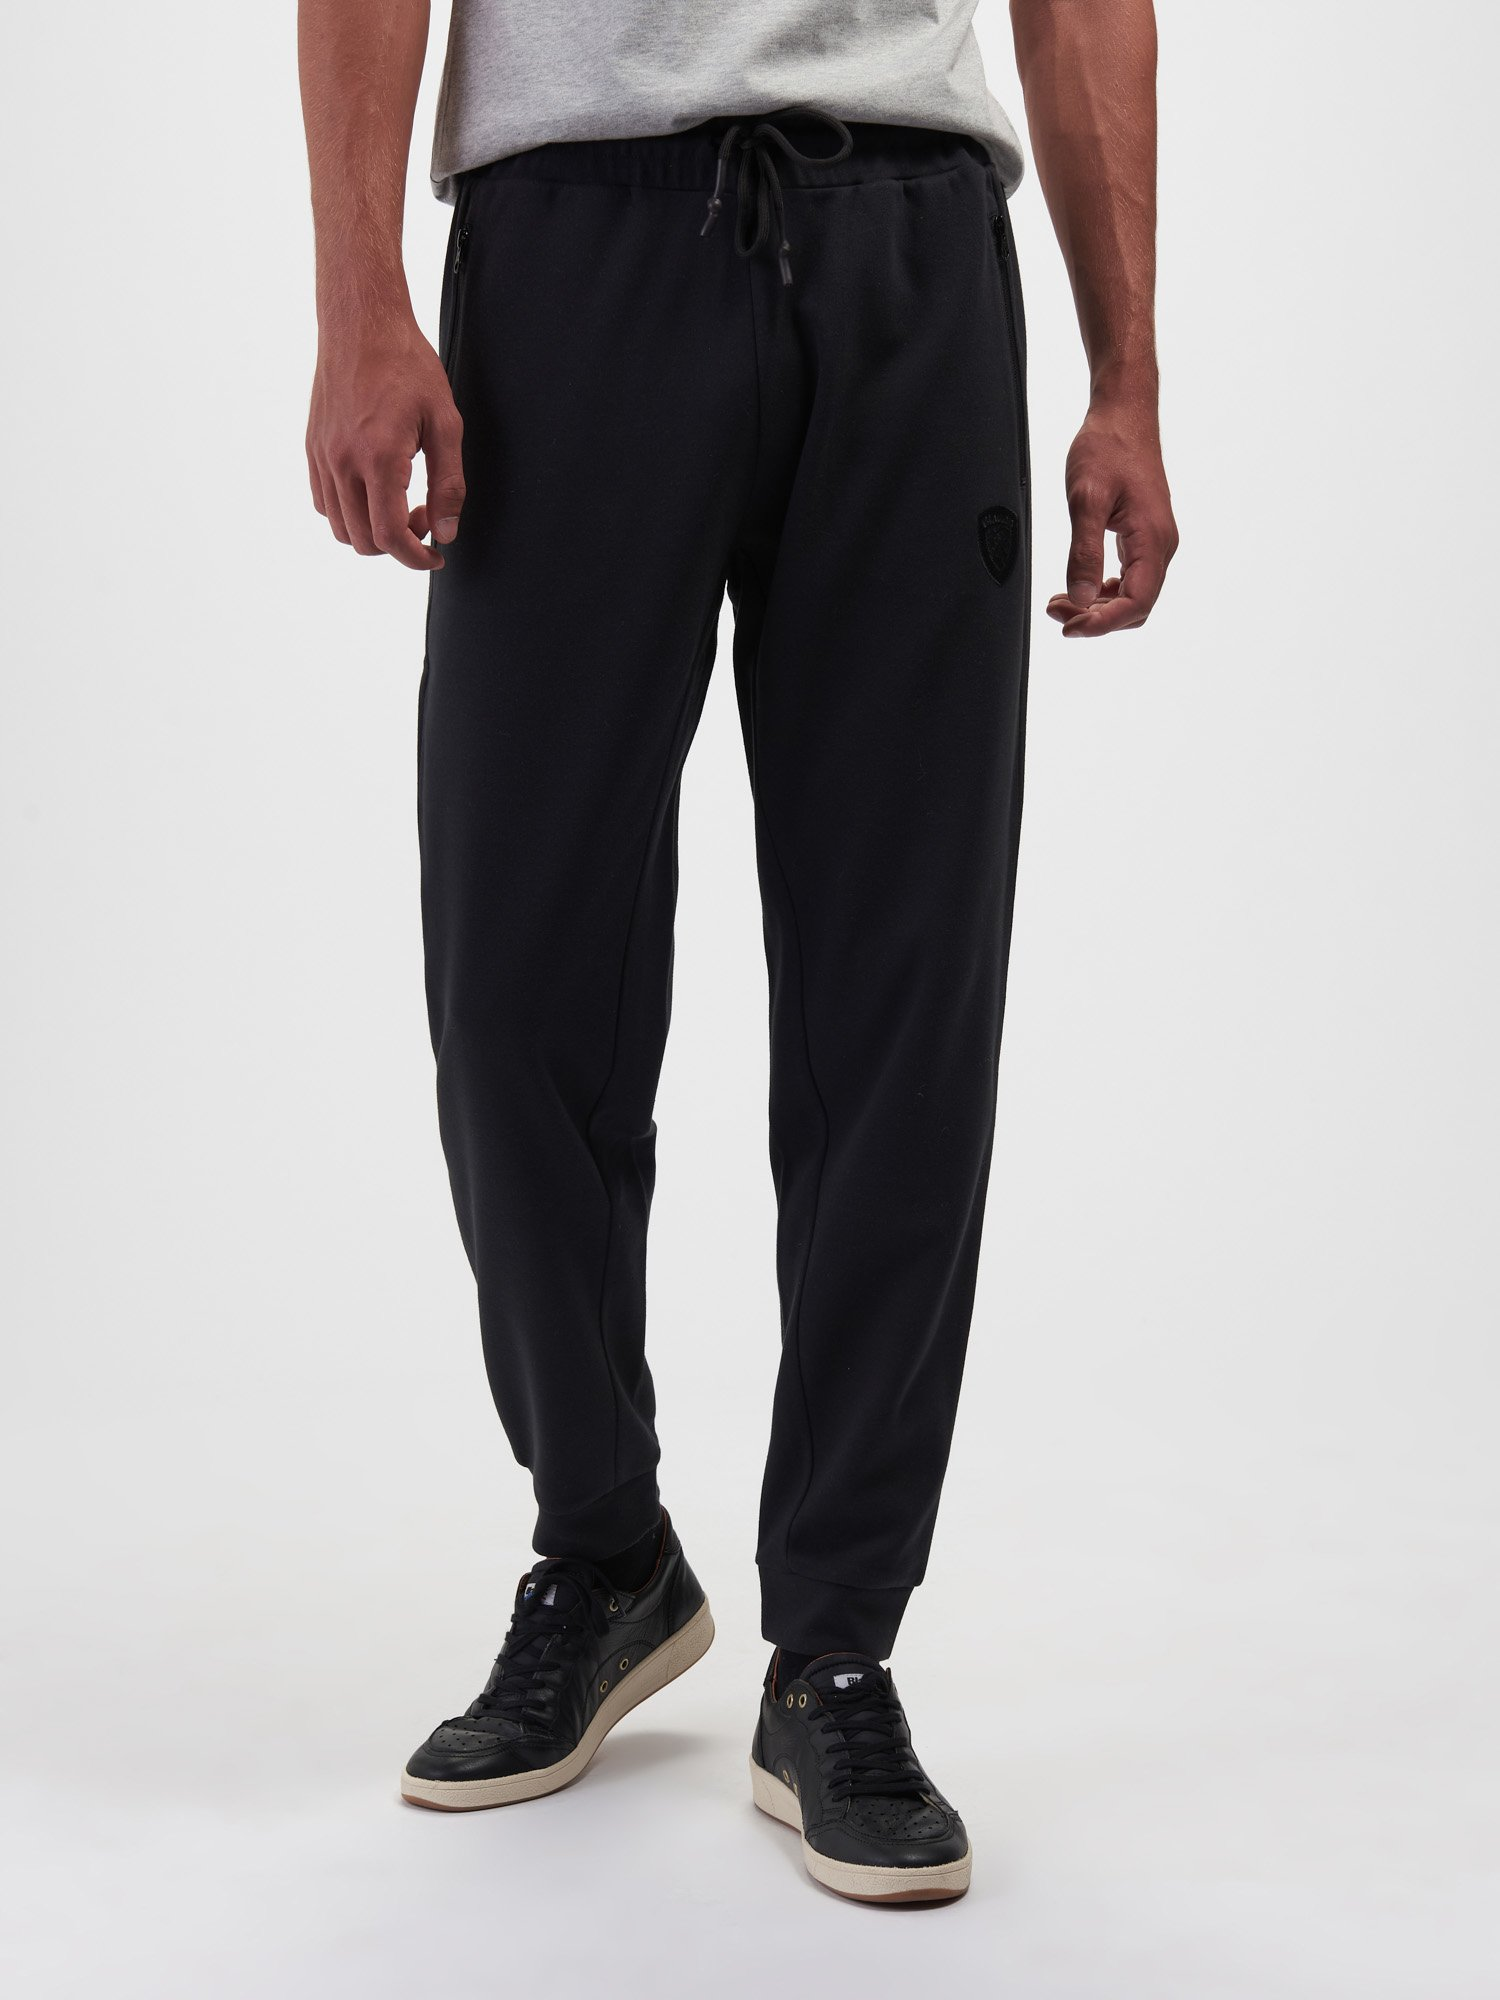 DOUBLE FACE PANTS - Blauer